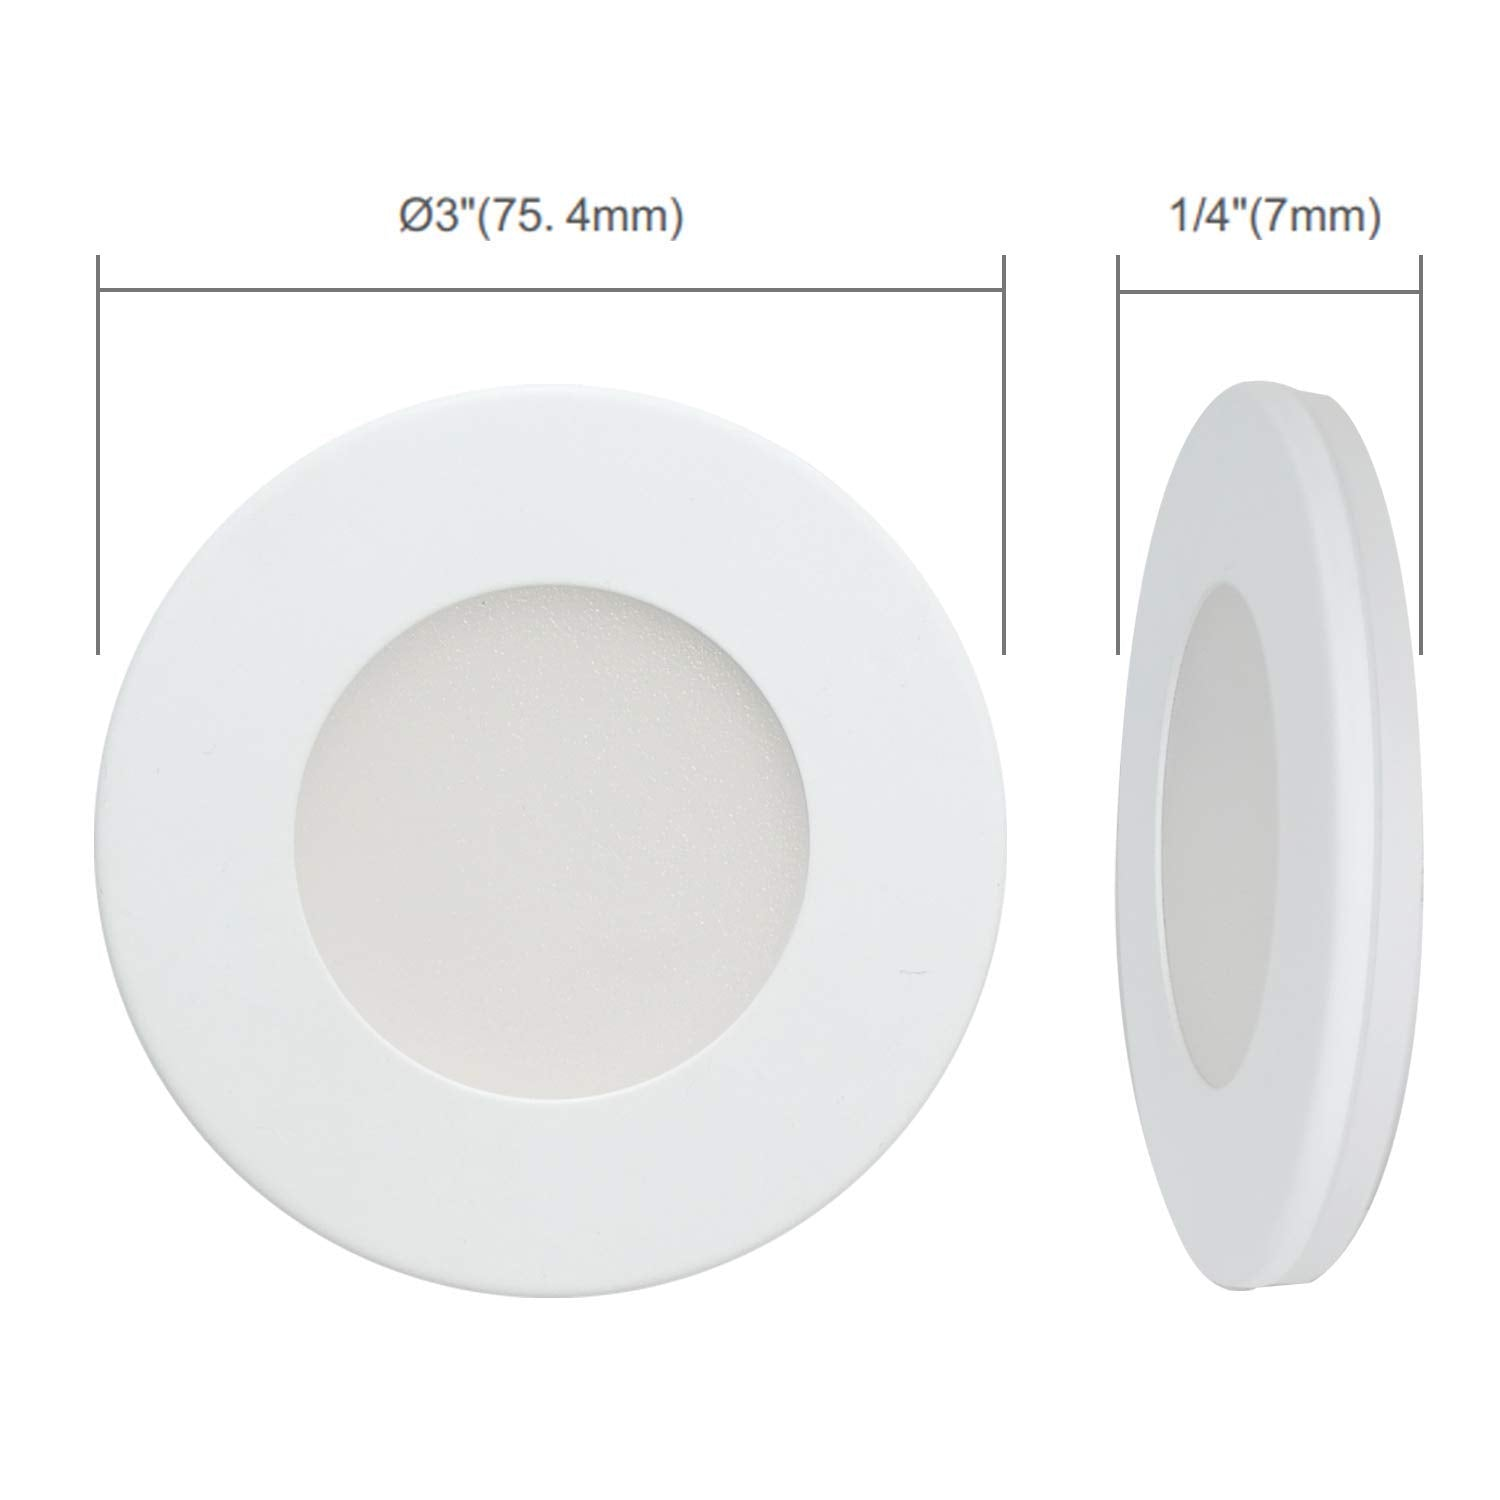 Ultra Slim LED DC 24V Under Cabinet Puck Light, Surface Mount or Recessed Mount, 3000K Warm White, ETL Listed (Black Cover) - Consavvy